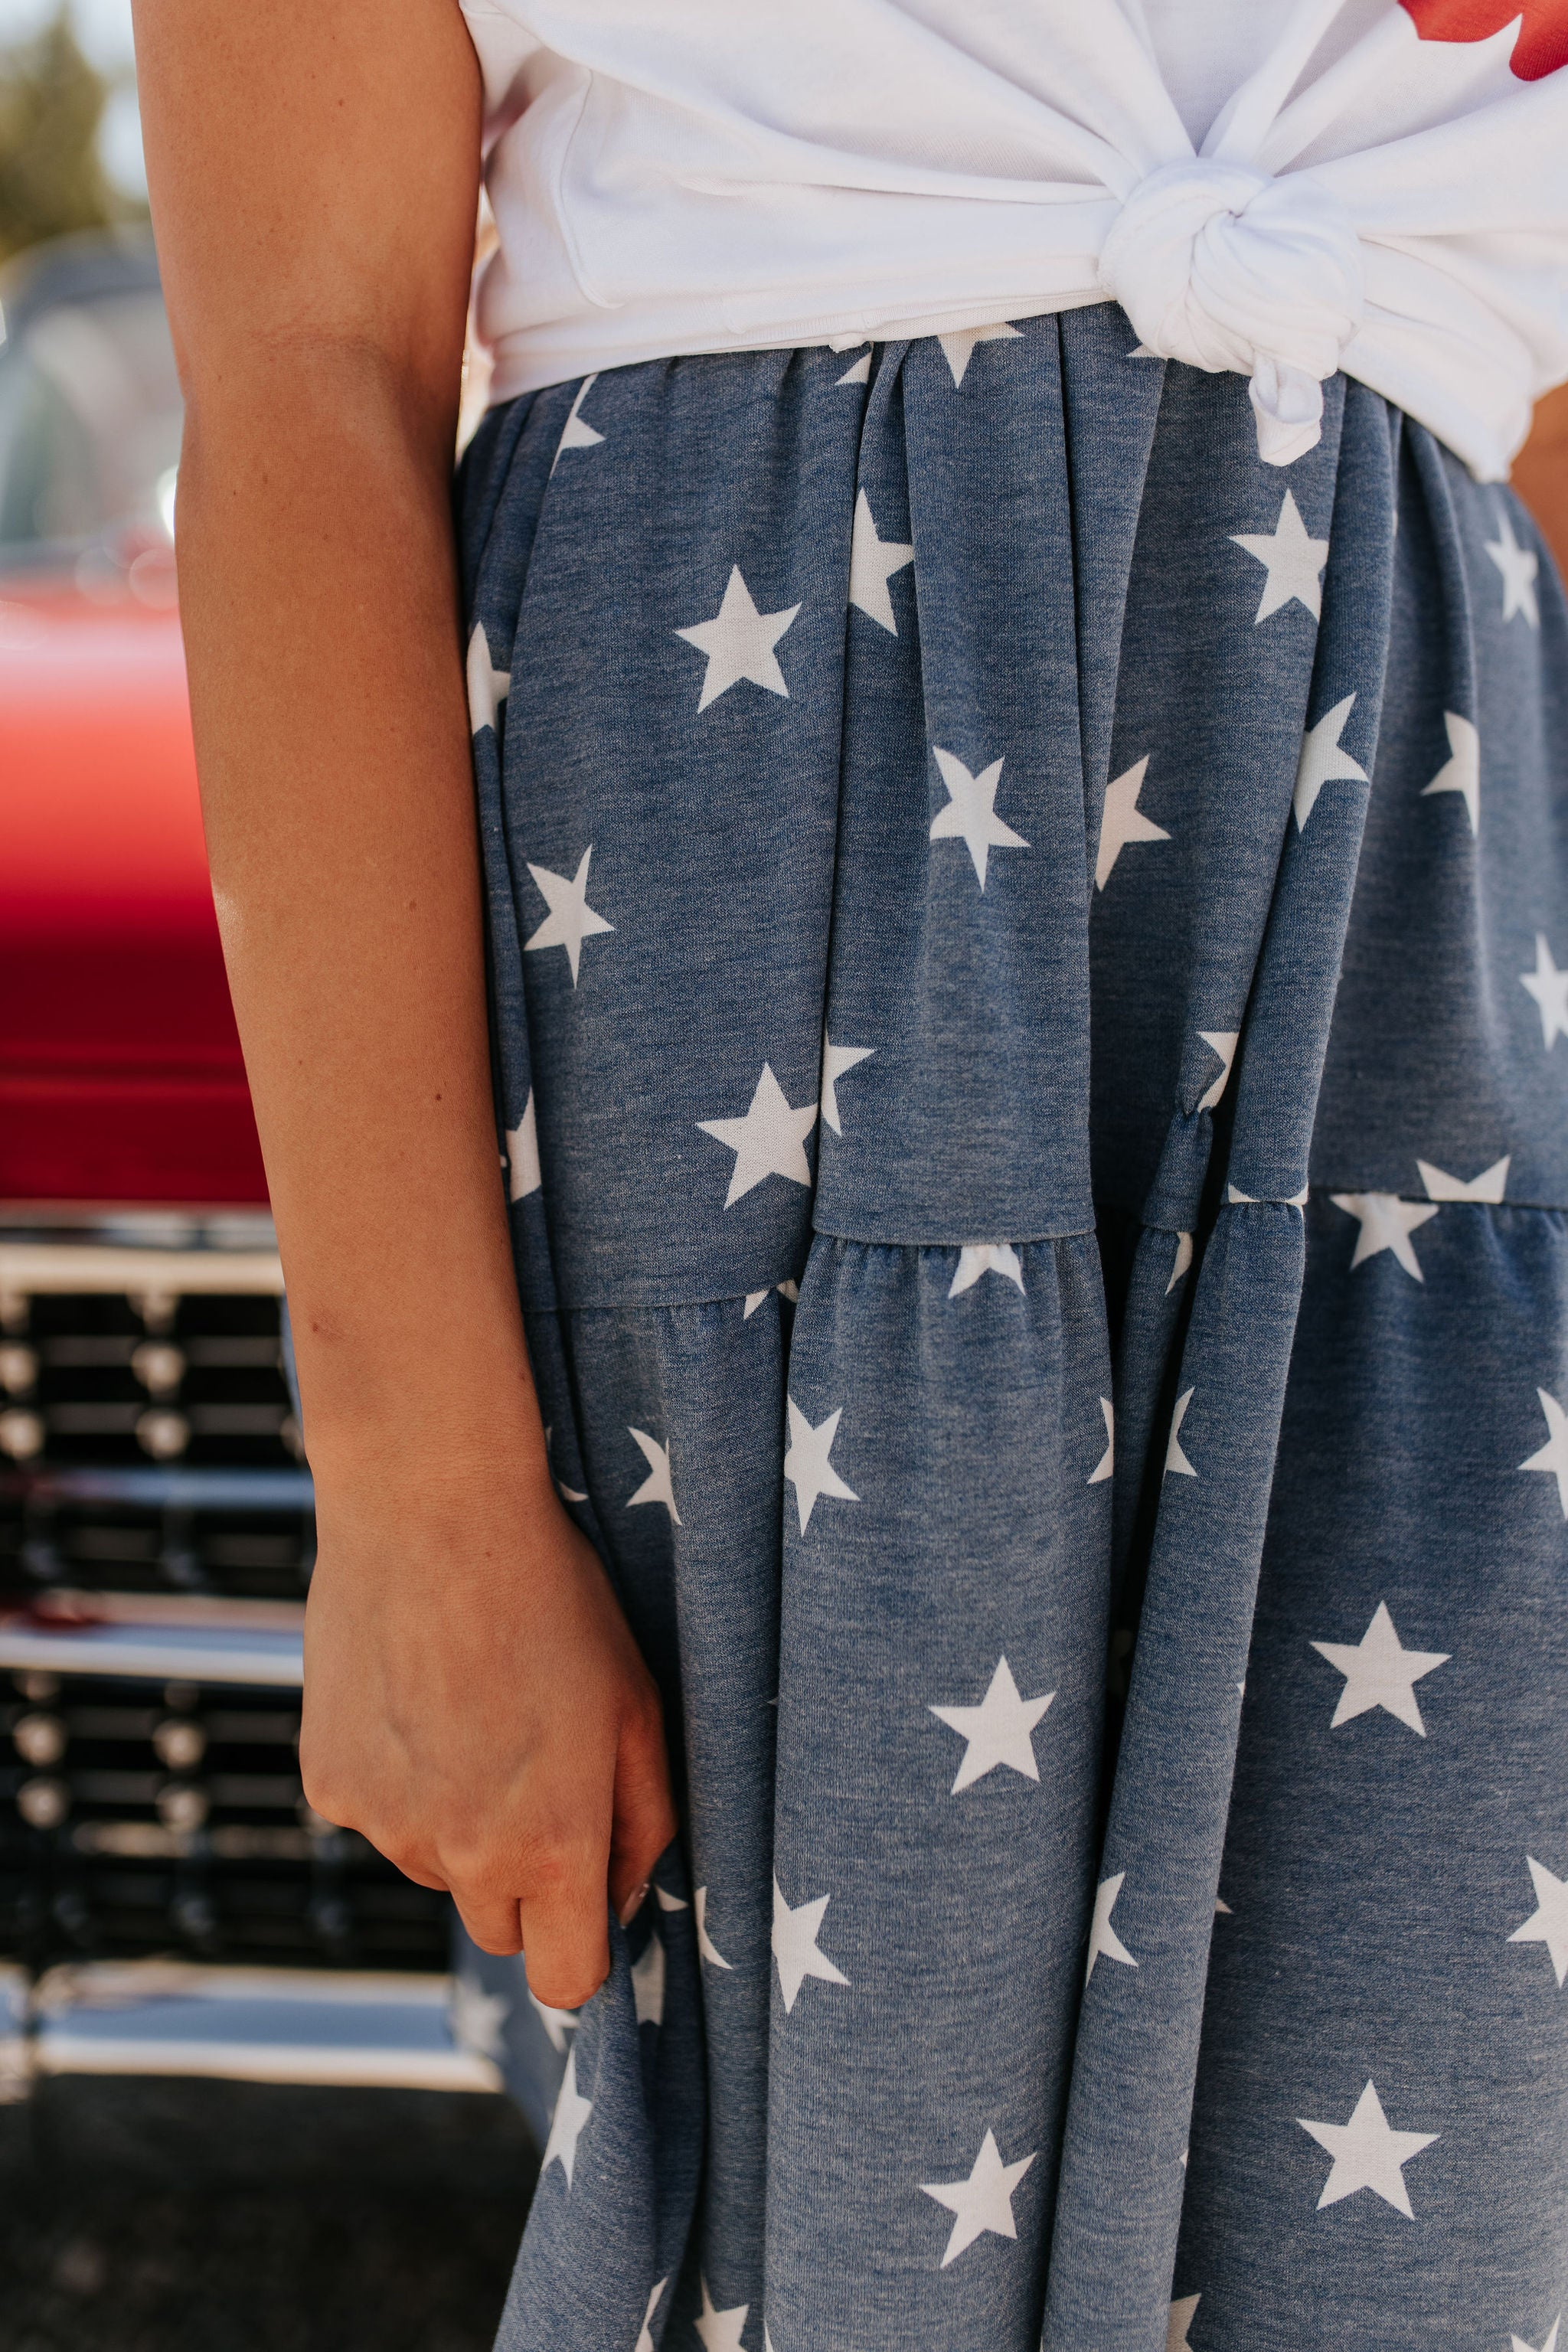 THE STARLEE MINI DRESS IN VINTAGE BLUE